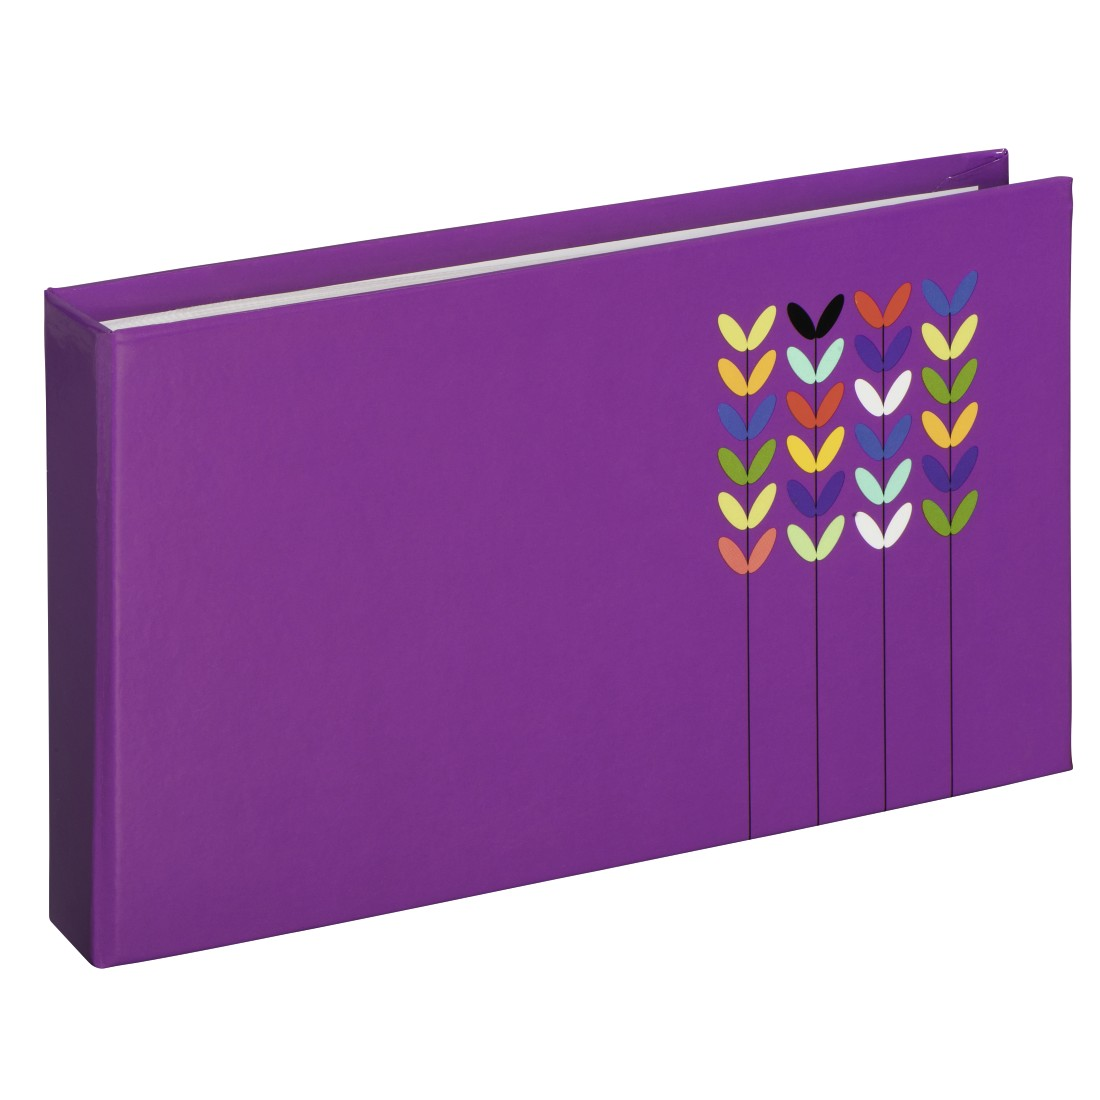 "abx High-Res Image - Hama, ""Blossom"" Mini Slip-in Album for 24 photos with a size of 10x15 cm, purple"